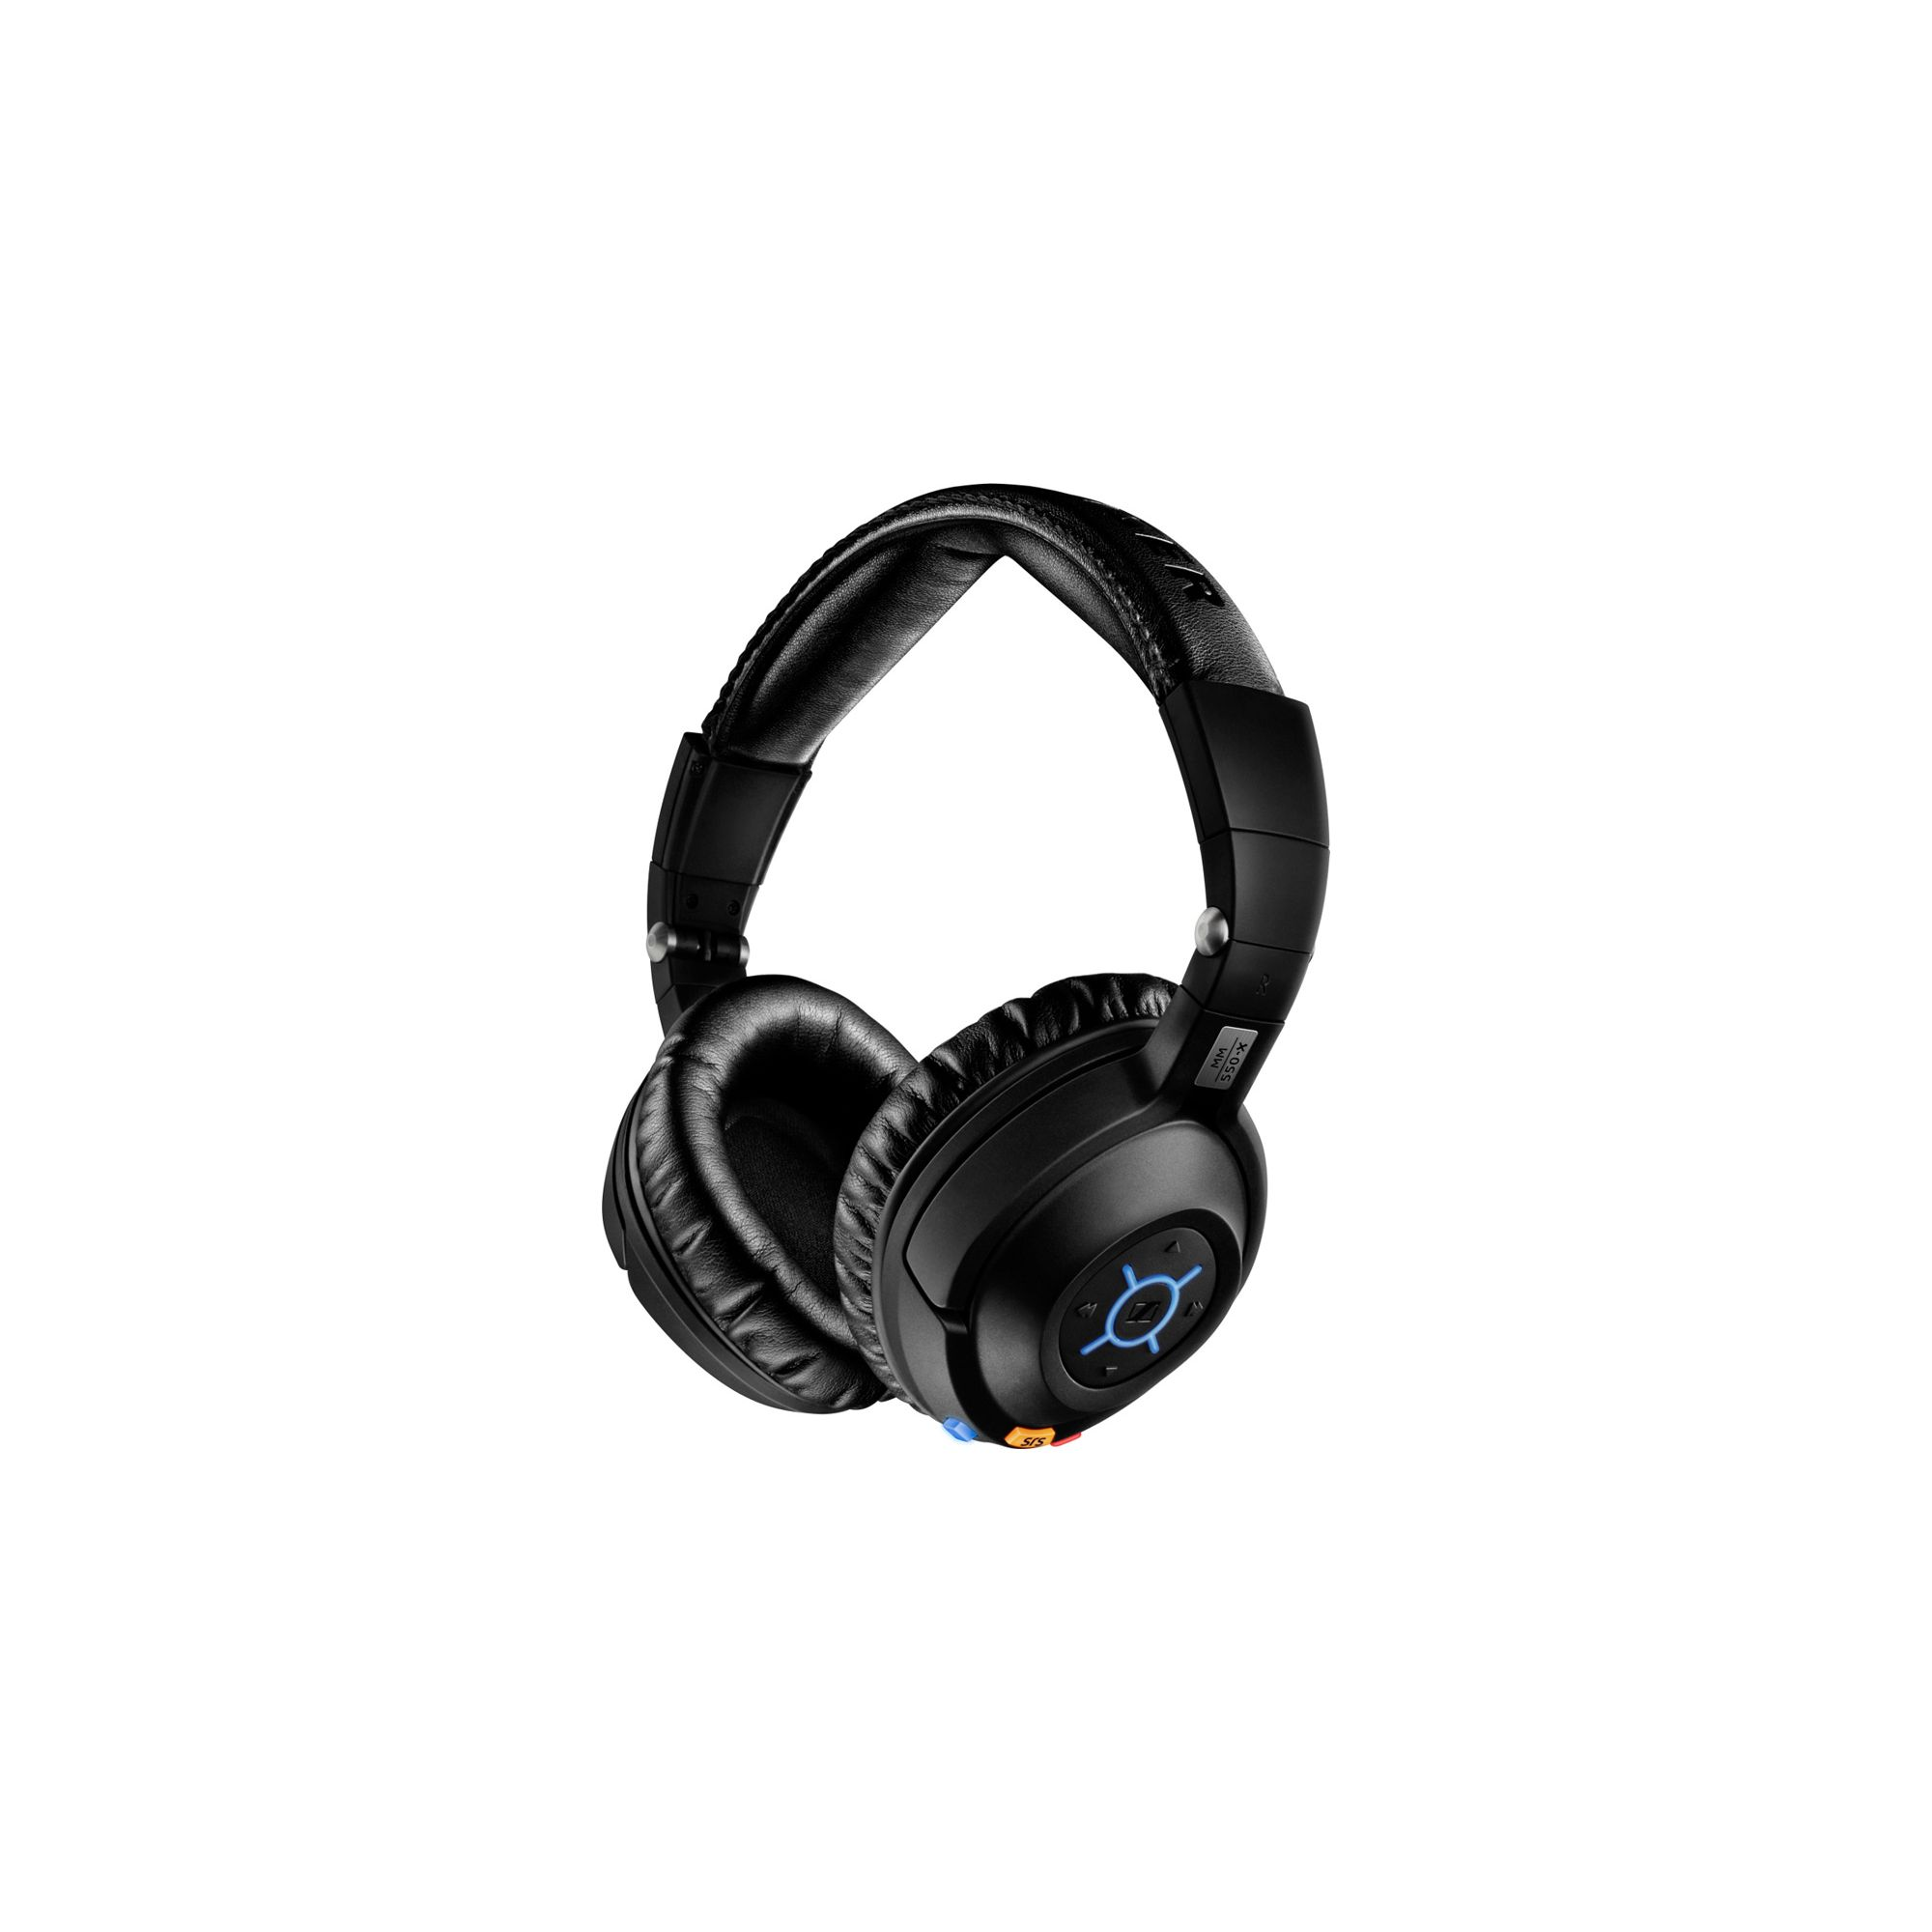 SENNHEISER MM550X BLUETOOTH HEADPHONES at Tesco Direct